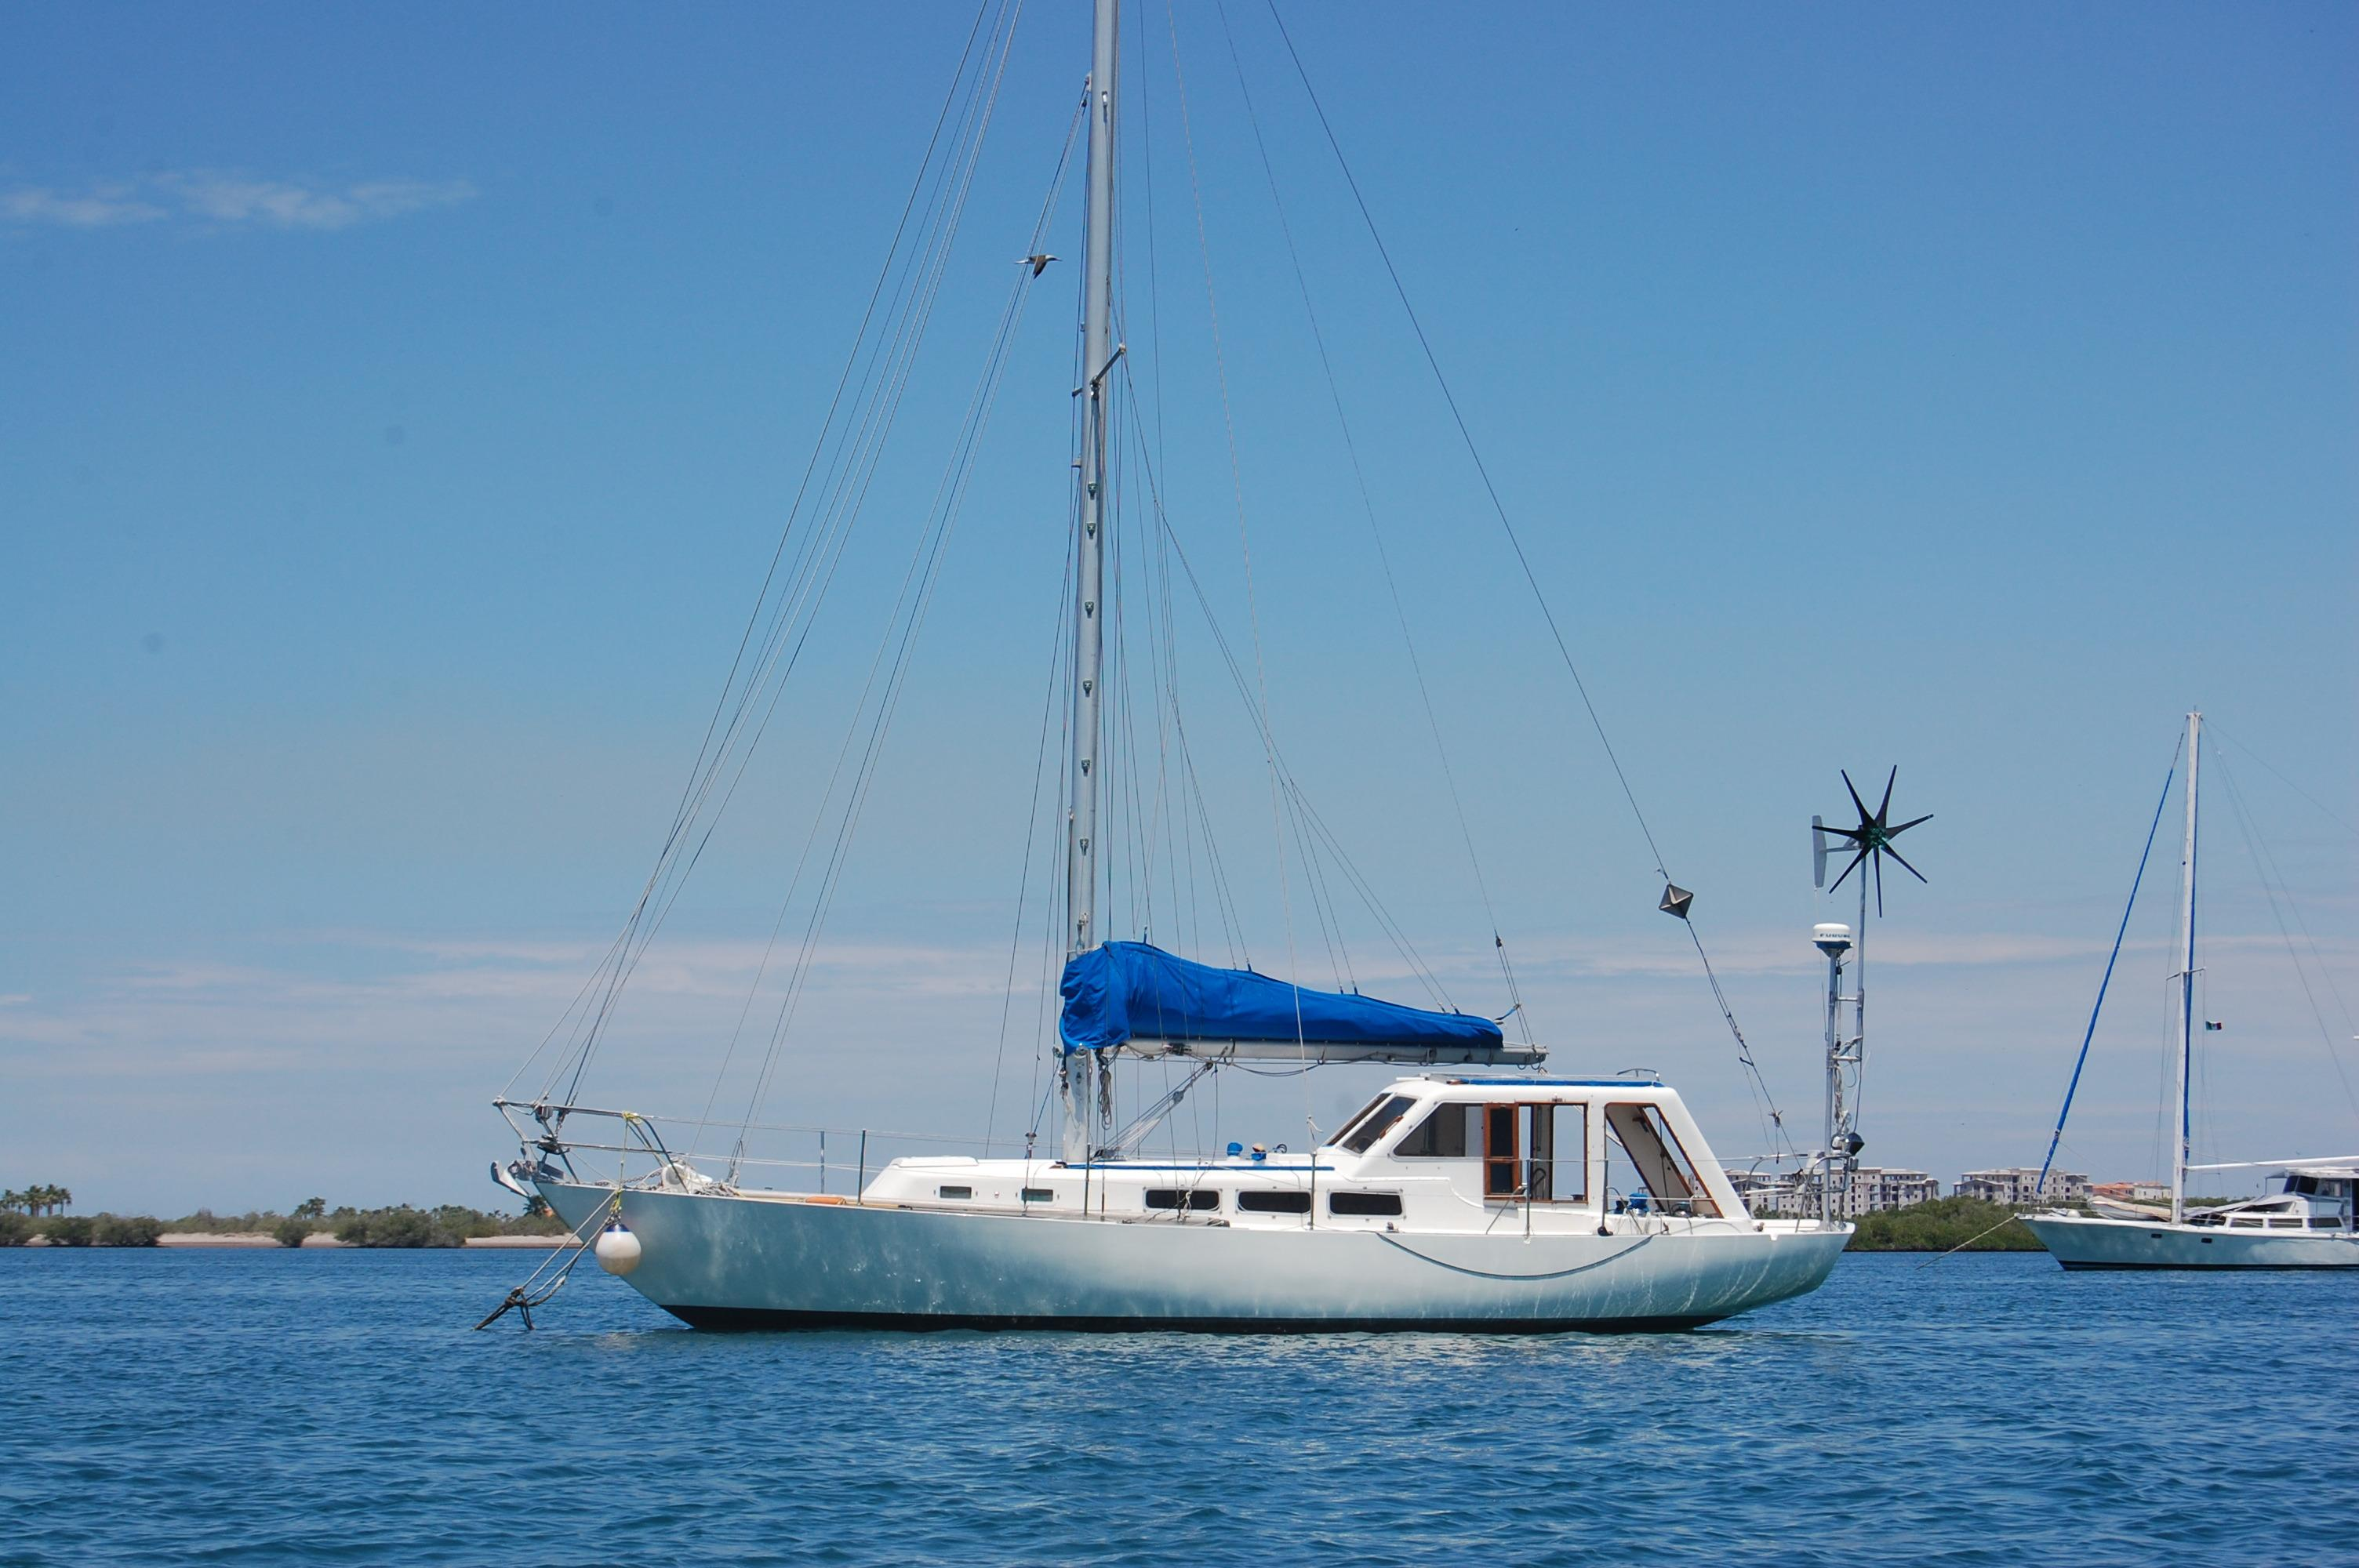 42' Spencer Sloop+Boat for sale!